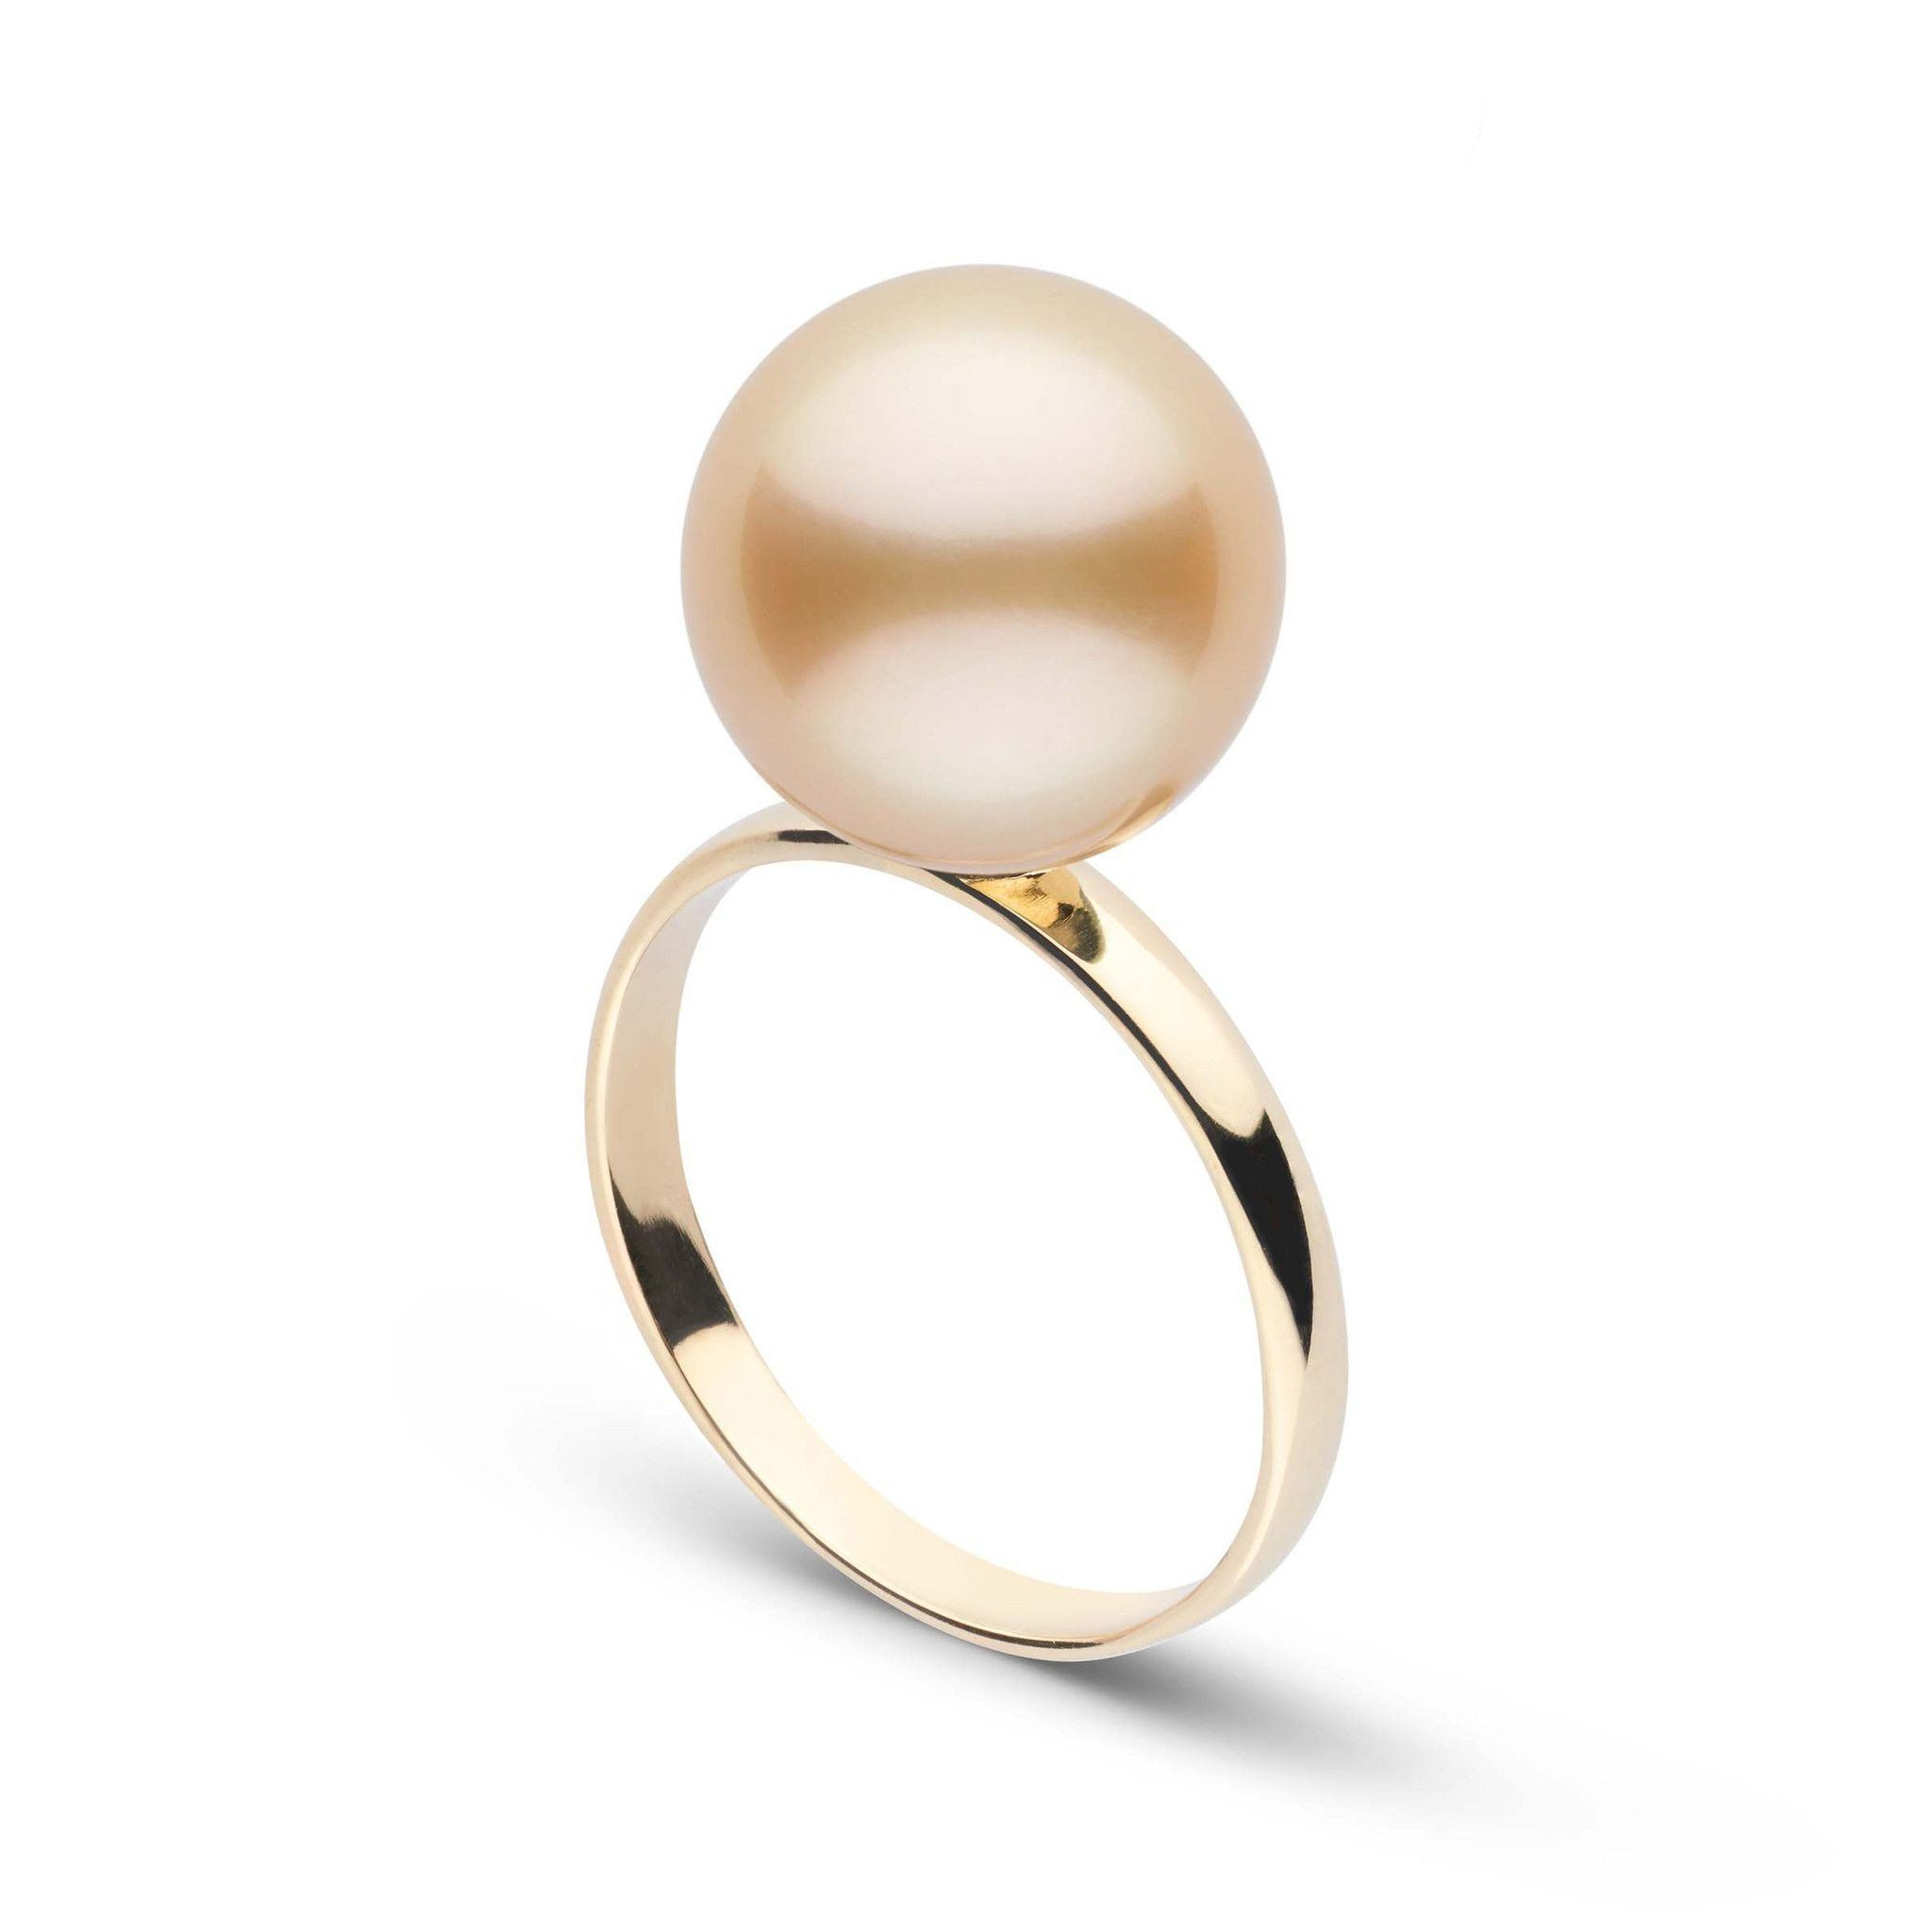 Classic Collection 11.0-12.0 mm Golden South Sea Pearl Ring